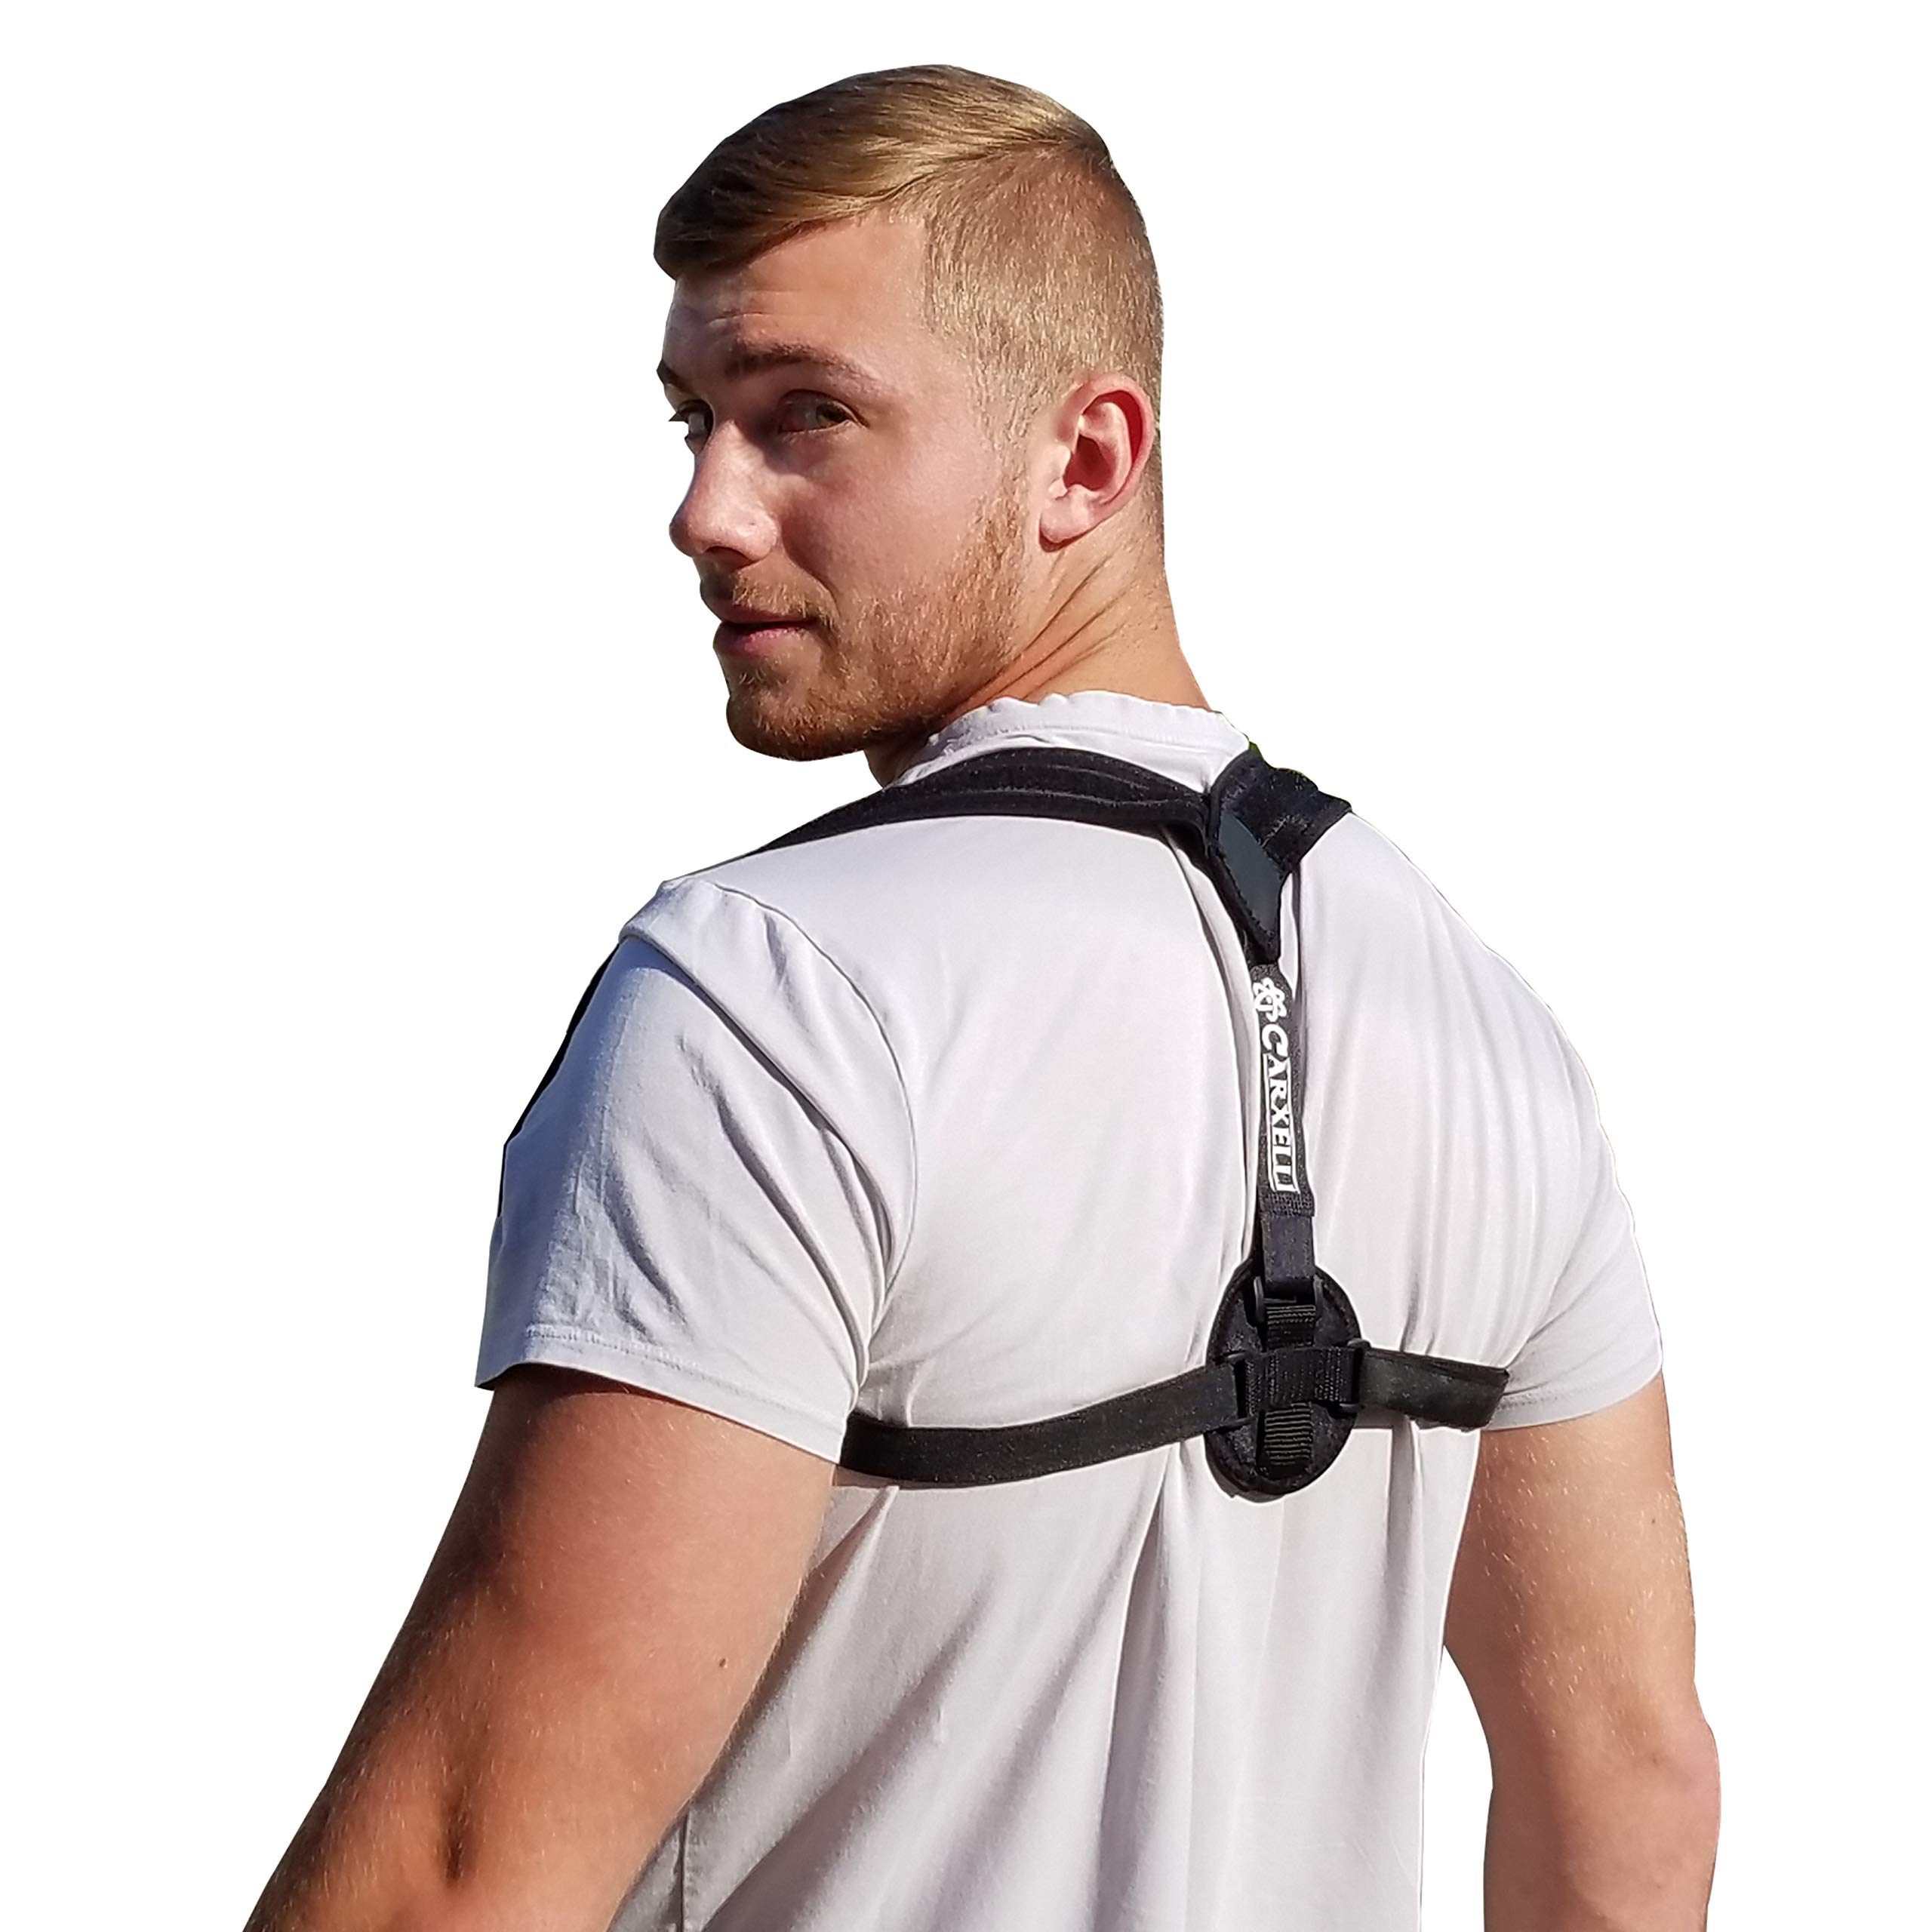 Carxelli Posture Corrector - Large/X-Large Size - for Women & Men - Adjustable Back & Shoulders Support Brace to Improve Posture - Included Extra Padding - Workout Band & Carrying Bag